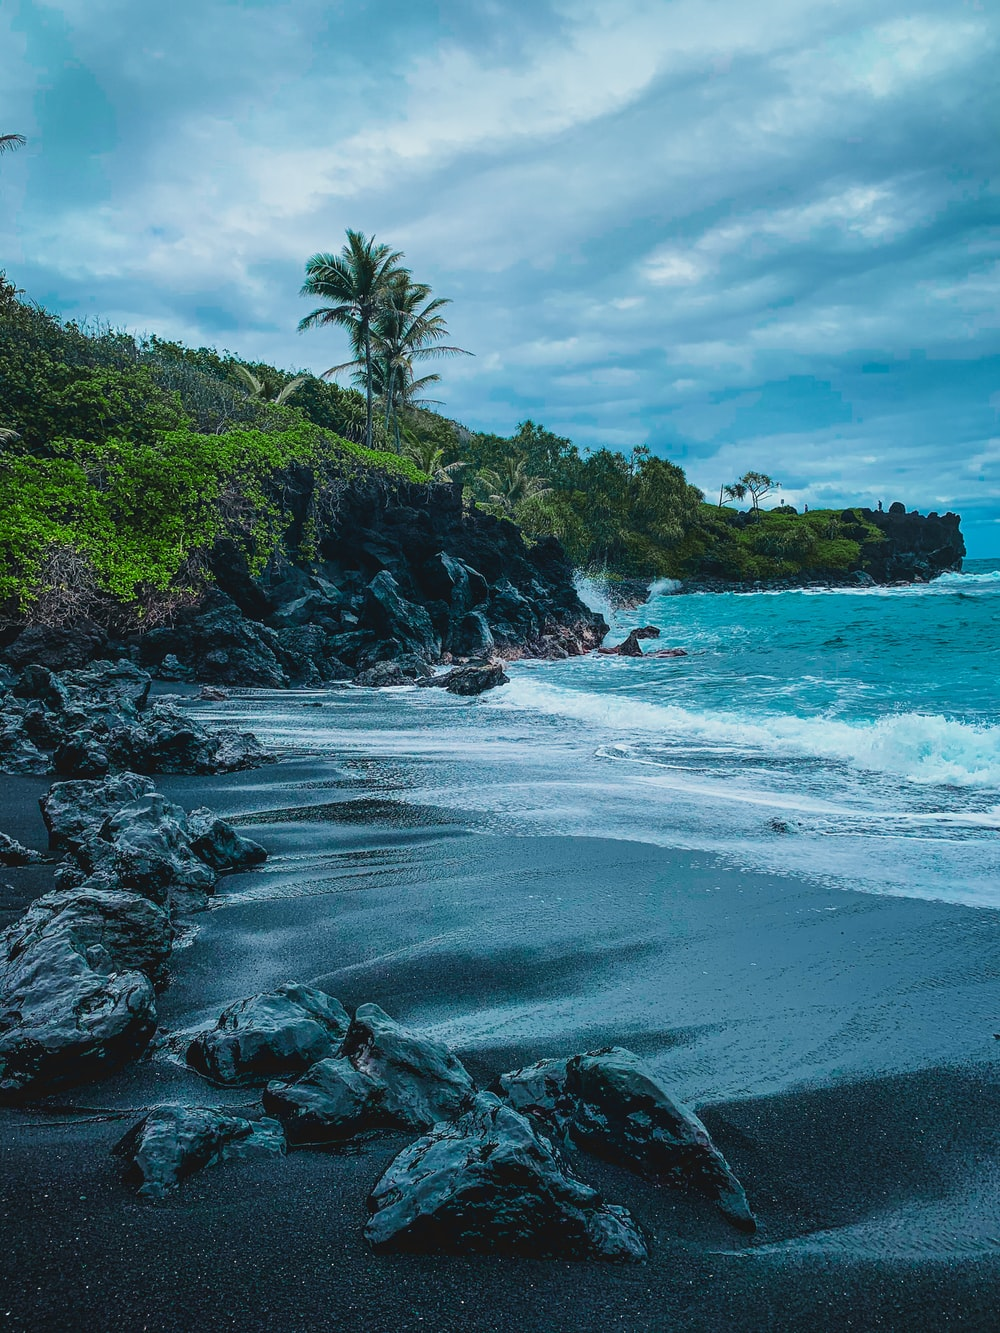 green trees on rocky shore during daytime